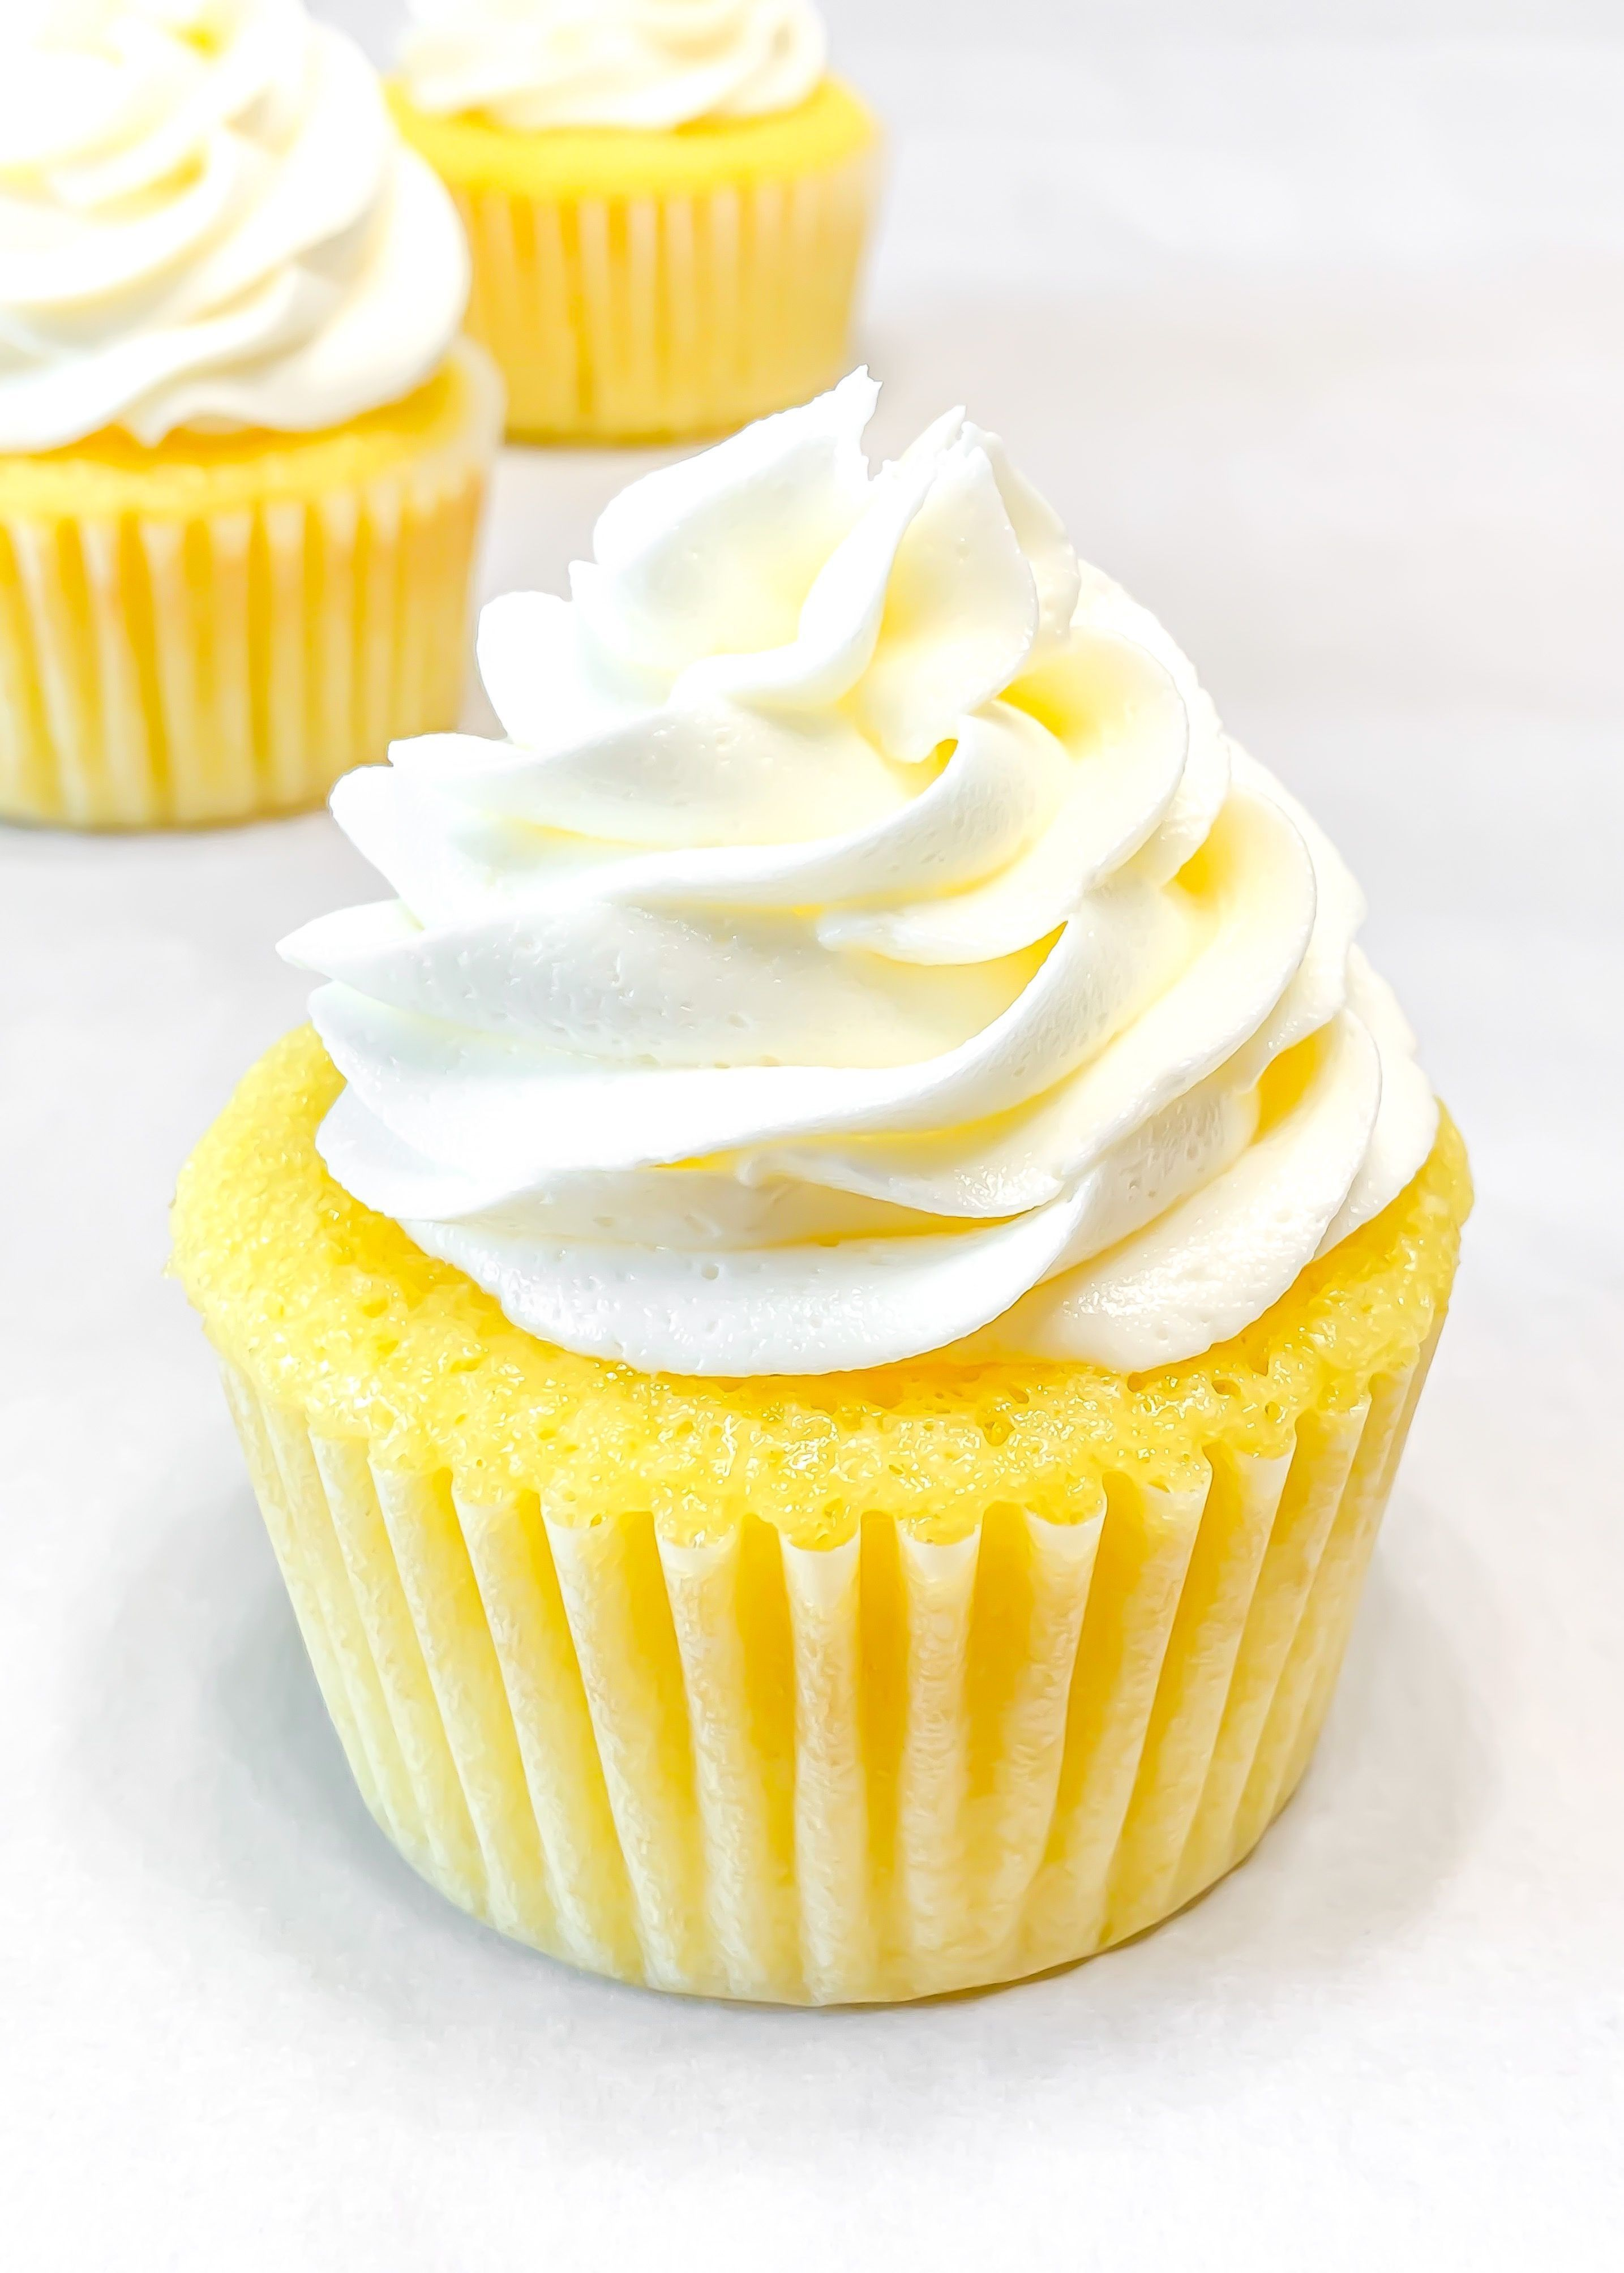 Lemon Cupcakes with Lemon Buttercream #lemonbuttercream These lemon cupcakes are soft and moist, made with lemon extract and zest to create the bright lemon flavor. After cooling, the cupcakes are decorated with a swirl of lemon buttercream and chilled for an hour to really make the lemon flavor shine! #lemon #lemoncupcakes #cupcakerecipe #lemonbuttercream #lemonbuttercream Lemon Cupcakes with Lemon Buttercream #lemonbuttercream These lemon cupcakes are soft and moist, made with lemon extract an #lemonbuttercream